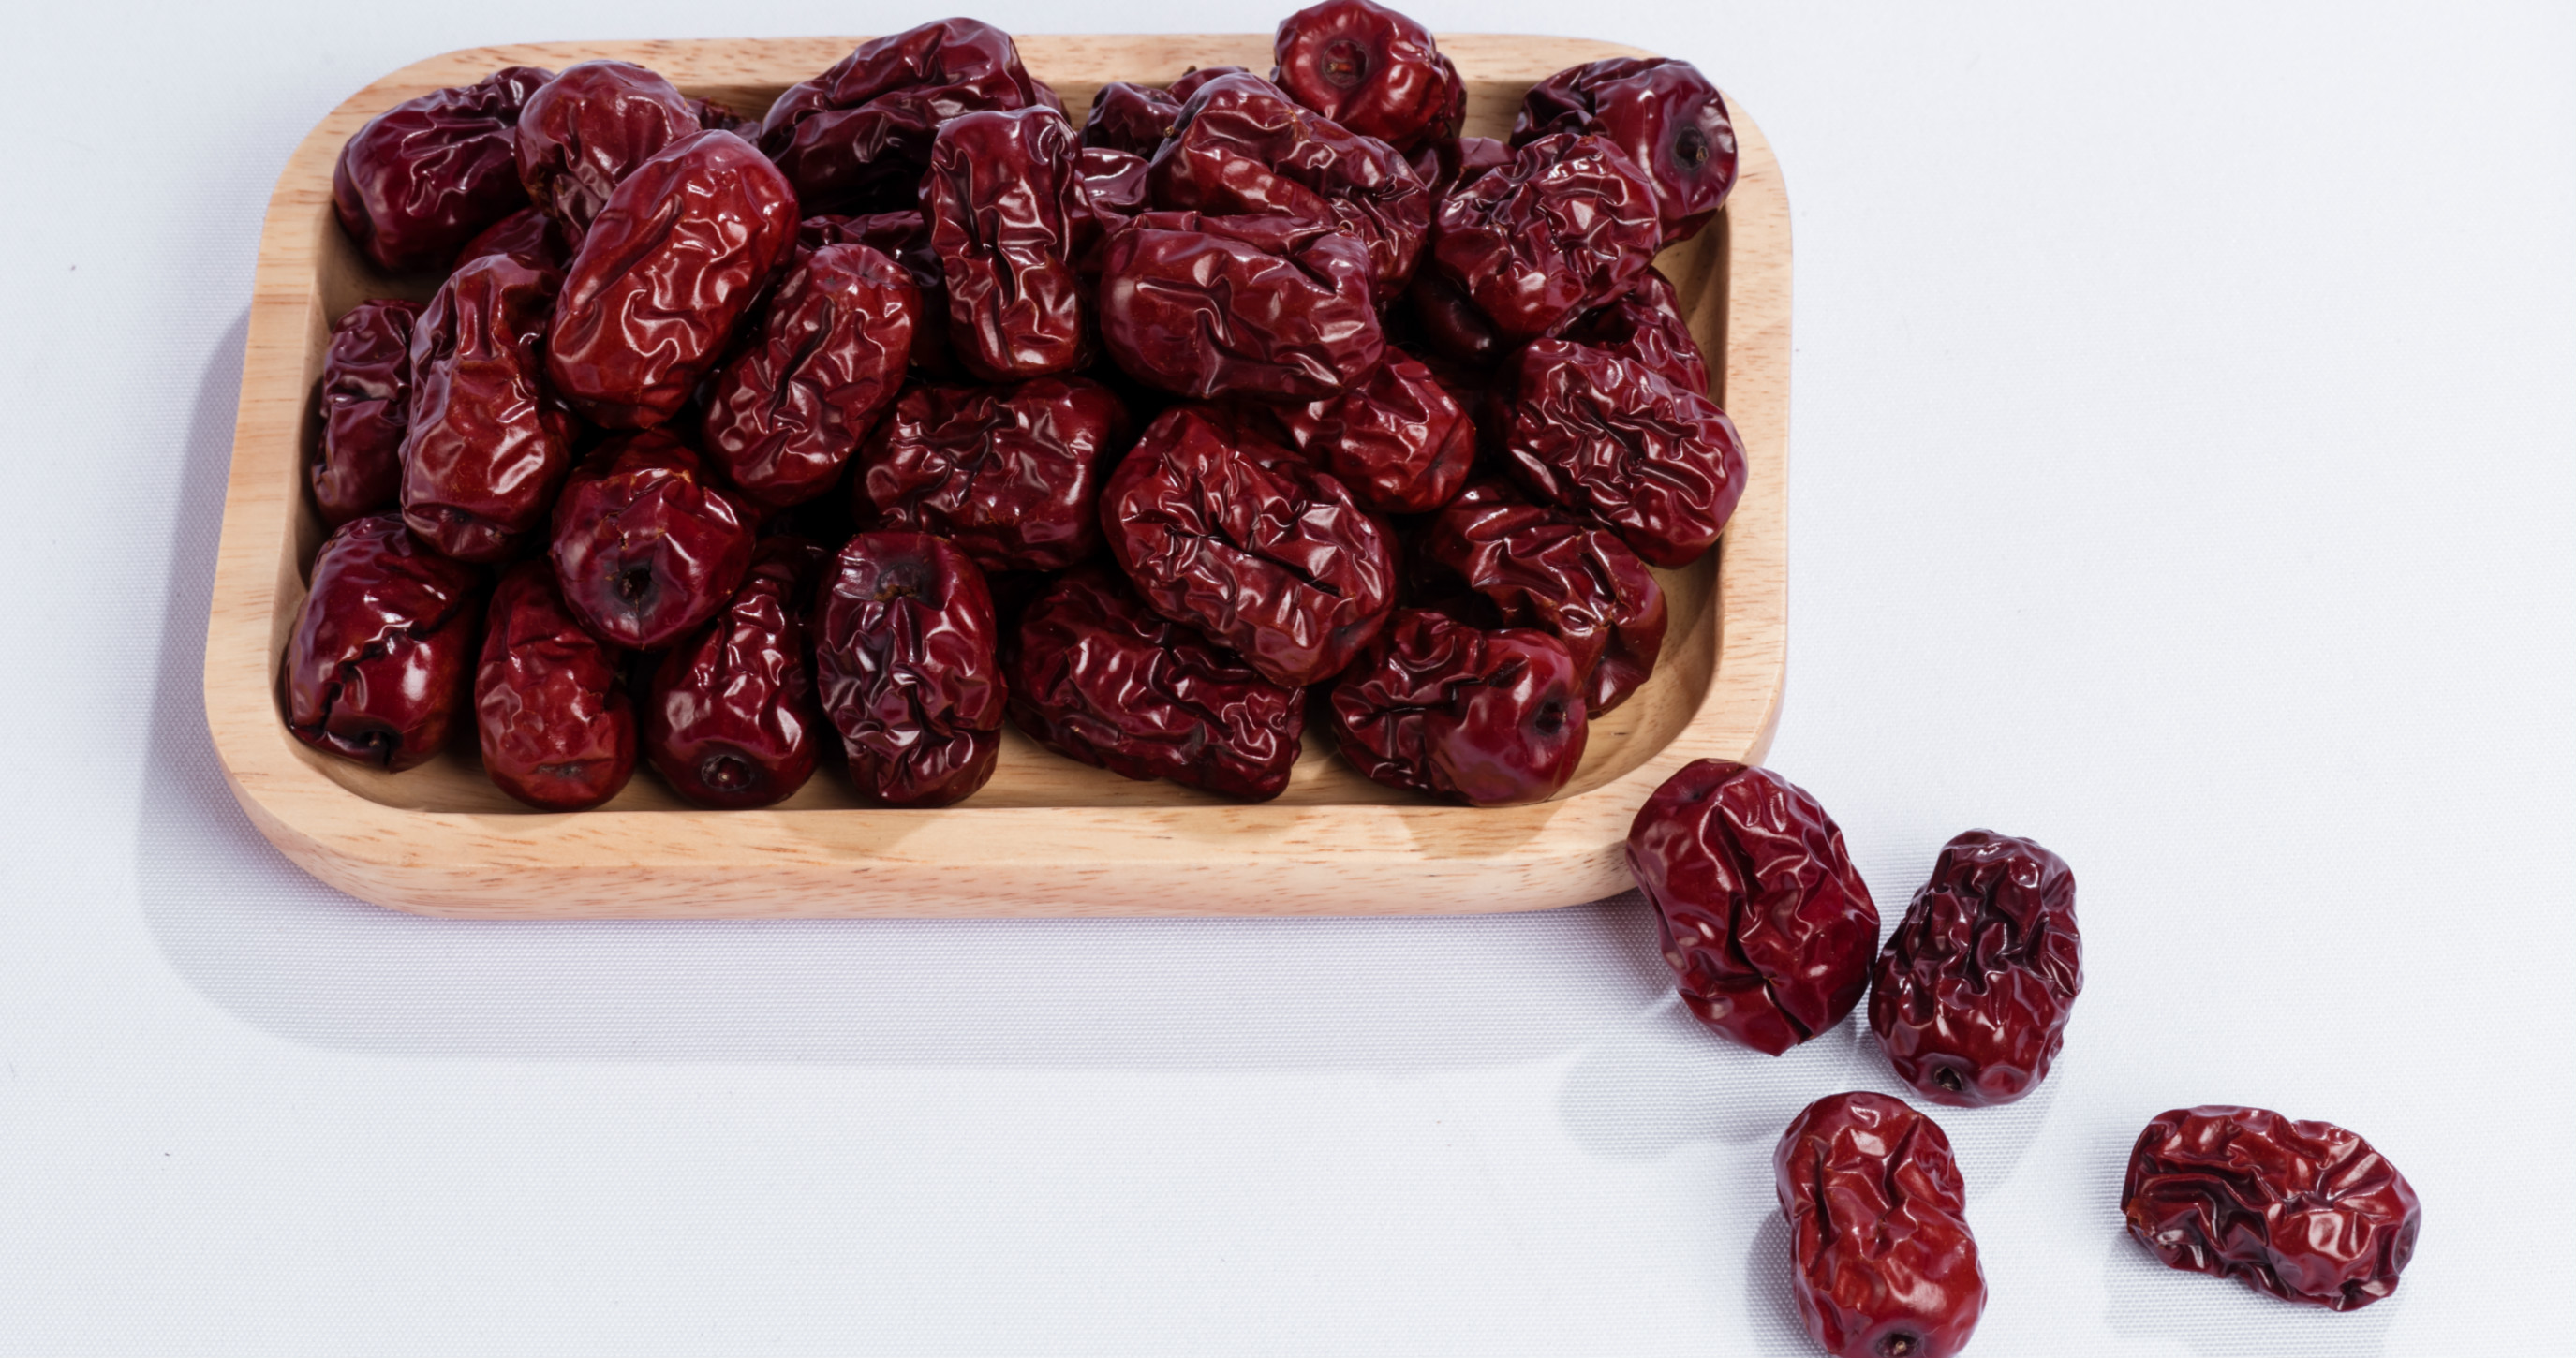 What are the side effects of red dates for women?